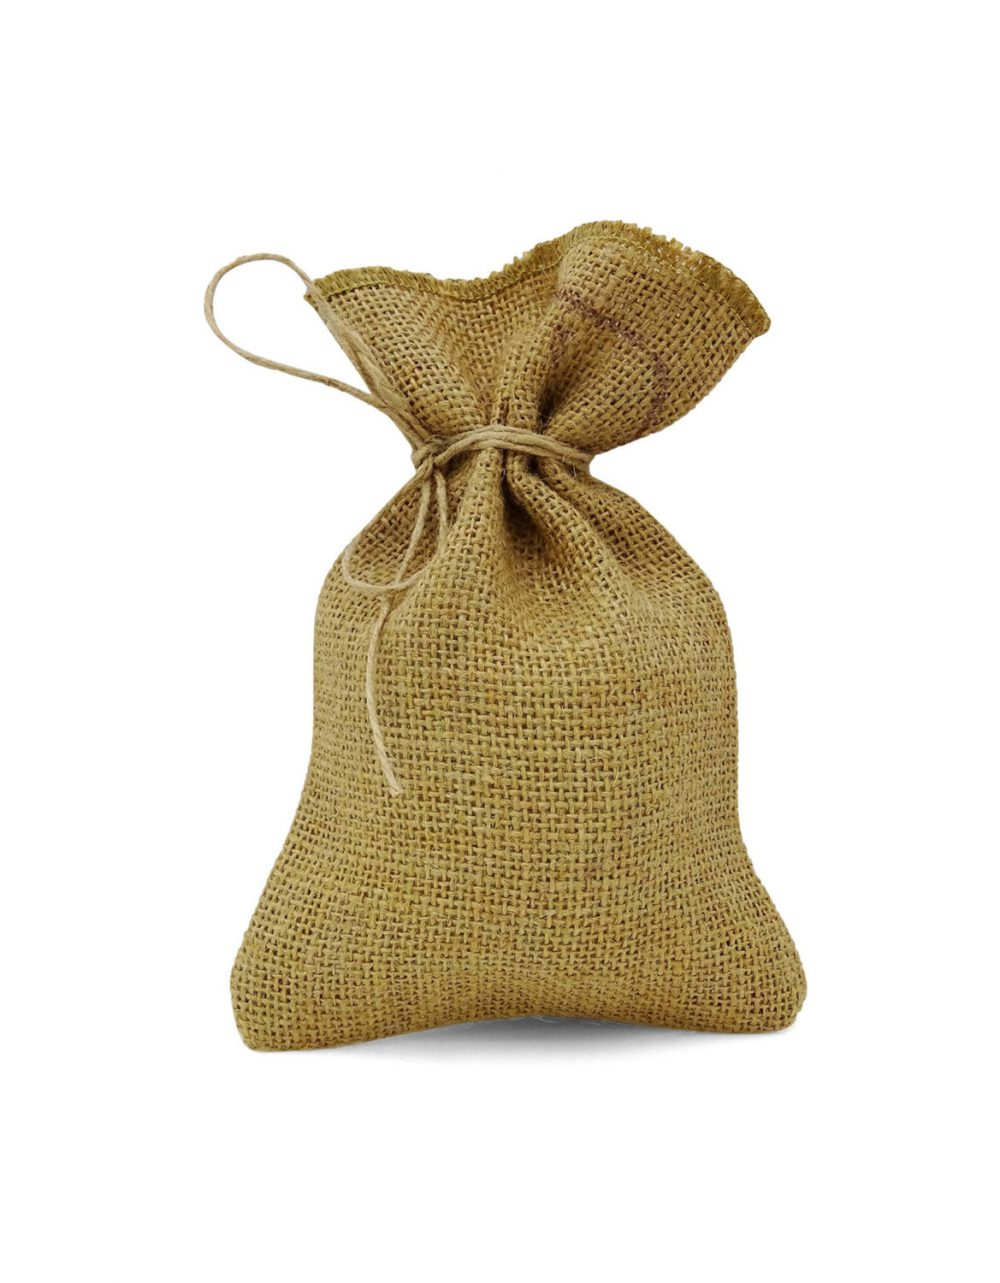 50 Small Drawstring Bag, Jute Pouches, Rustic Wedding Bags, Favor Burlap Sack Bags Pfab-130A